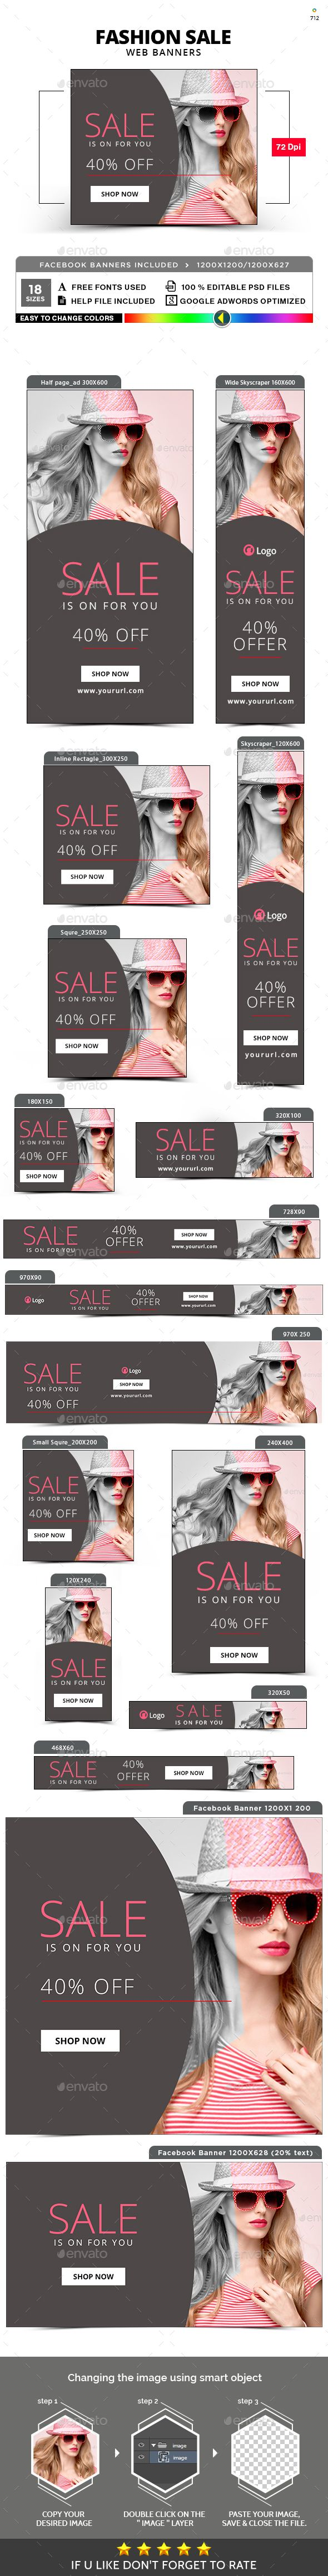 Fashion Sale Banners — Photoshop PSD #animated banner #marketing • Available here → https://graphicriver.net/item/fashion-sale-banners/20723422?ref=pxcr